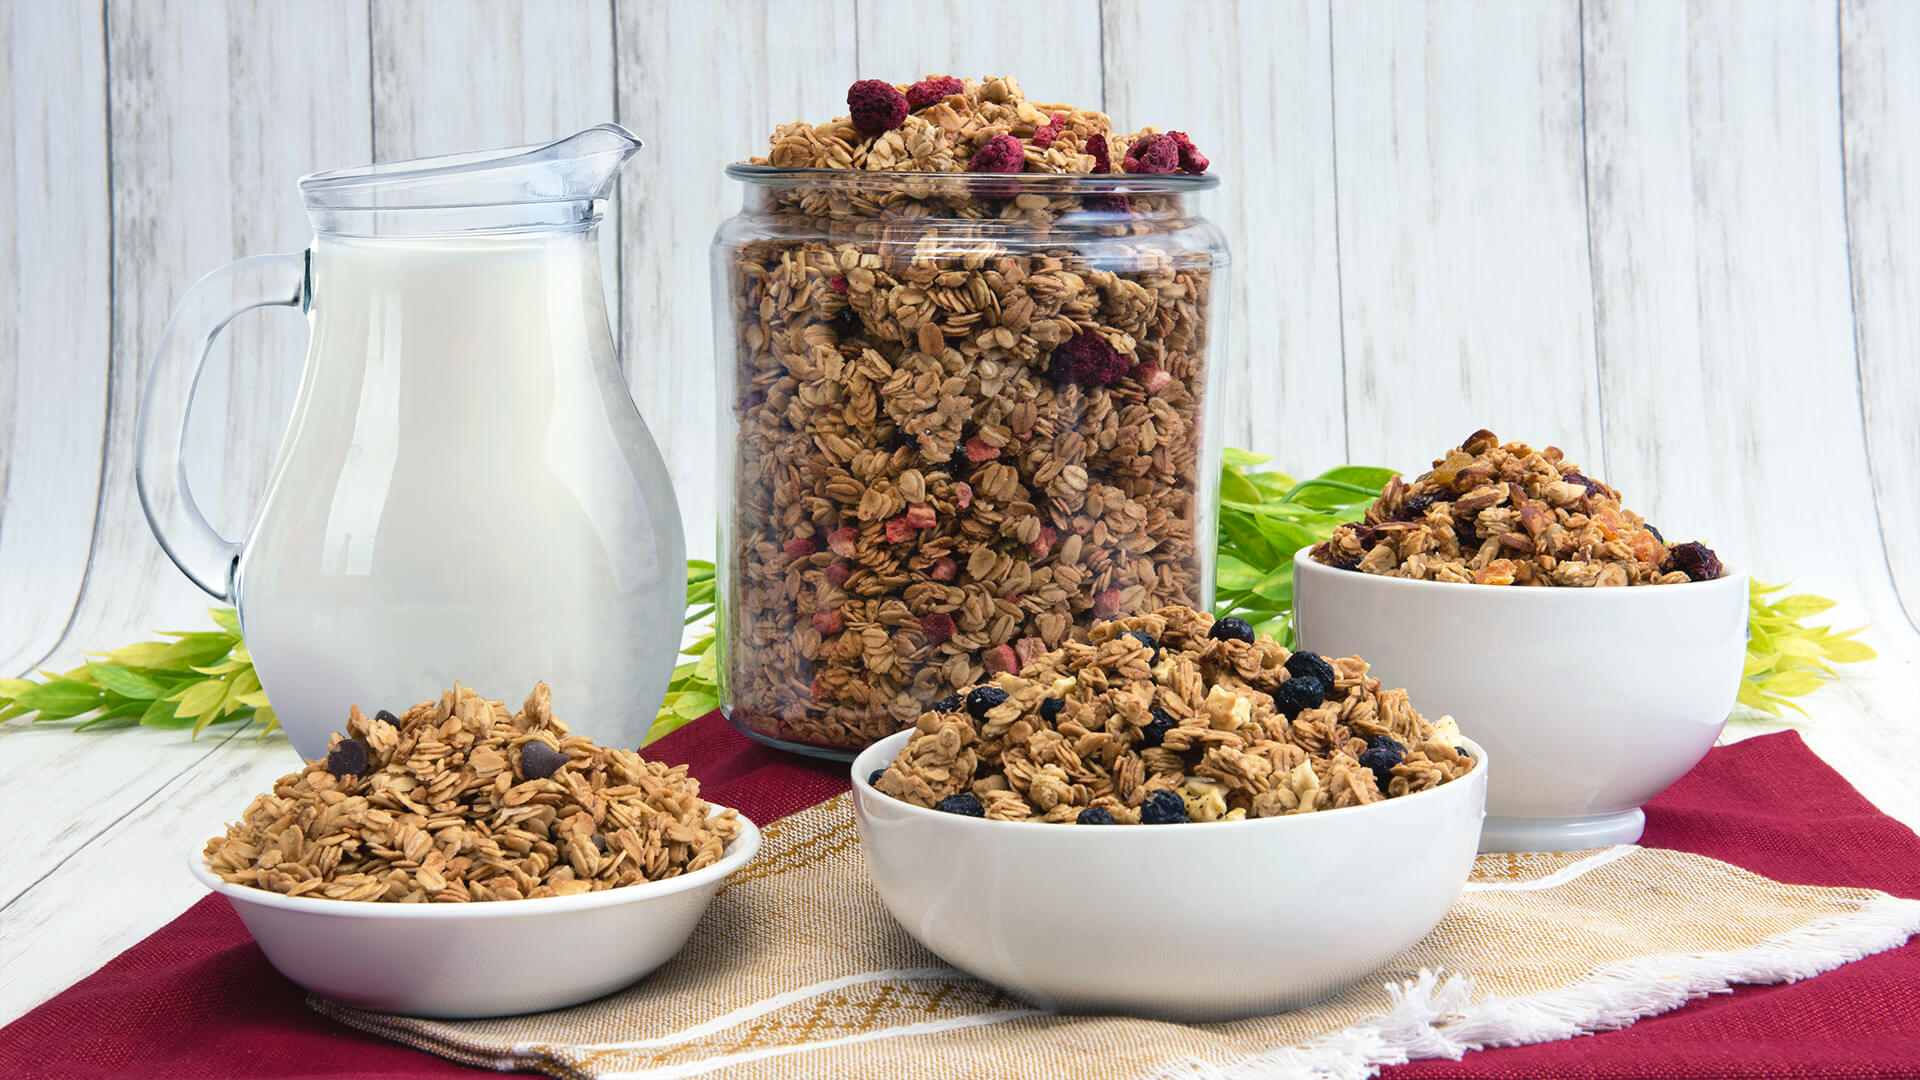 Our classic granola flavors displayed on a table